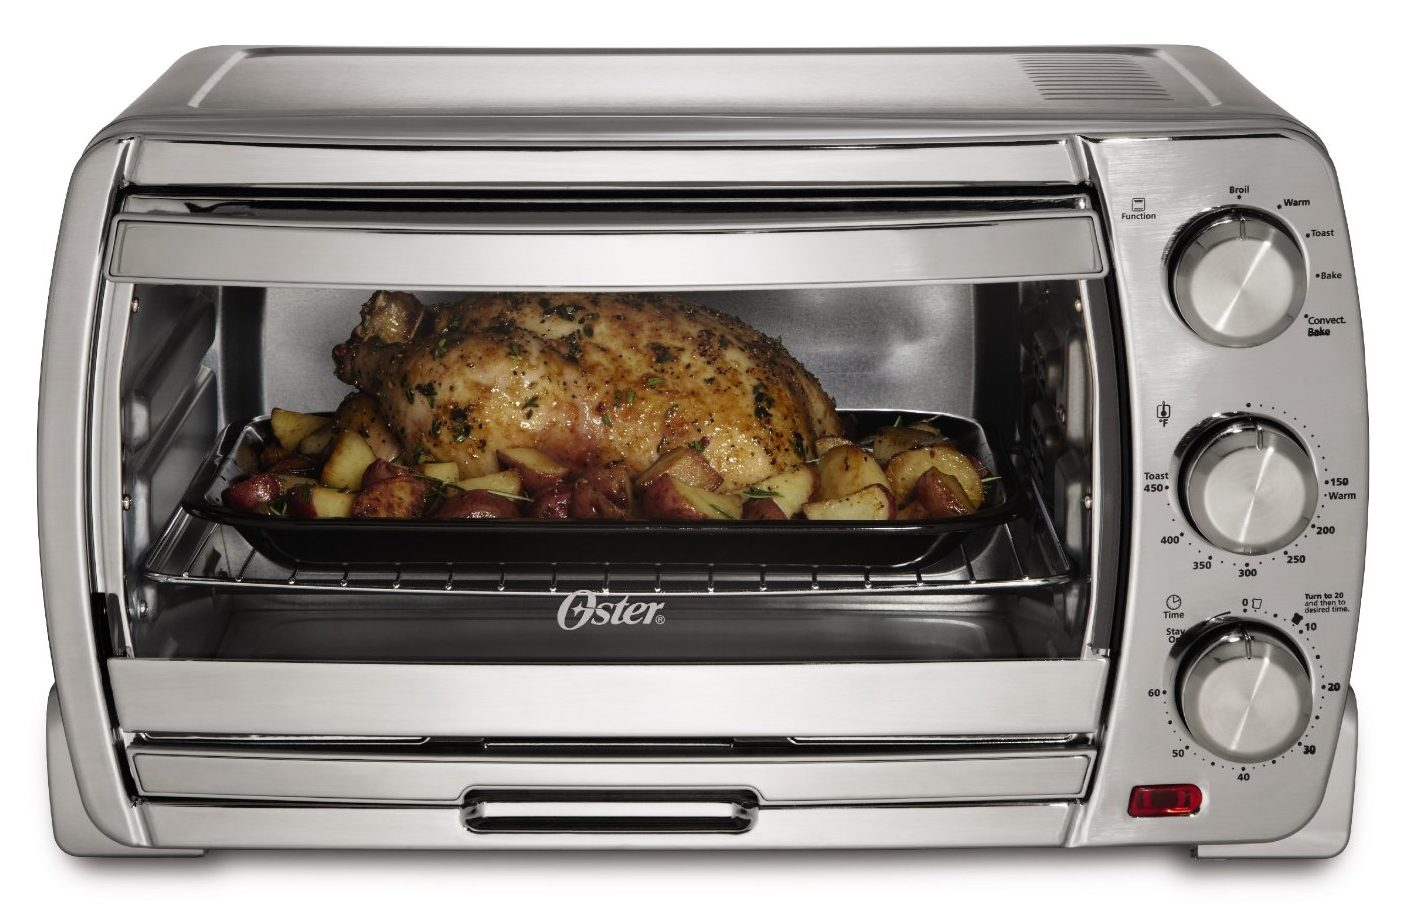 Toaster Oven With 2 Racks : Countertop Ovens For Multi-Level Cooking